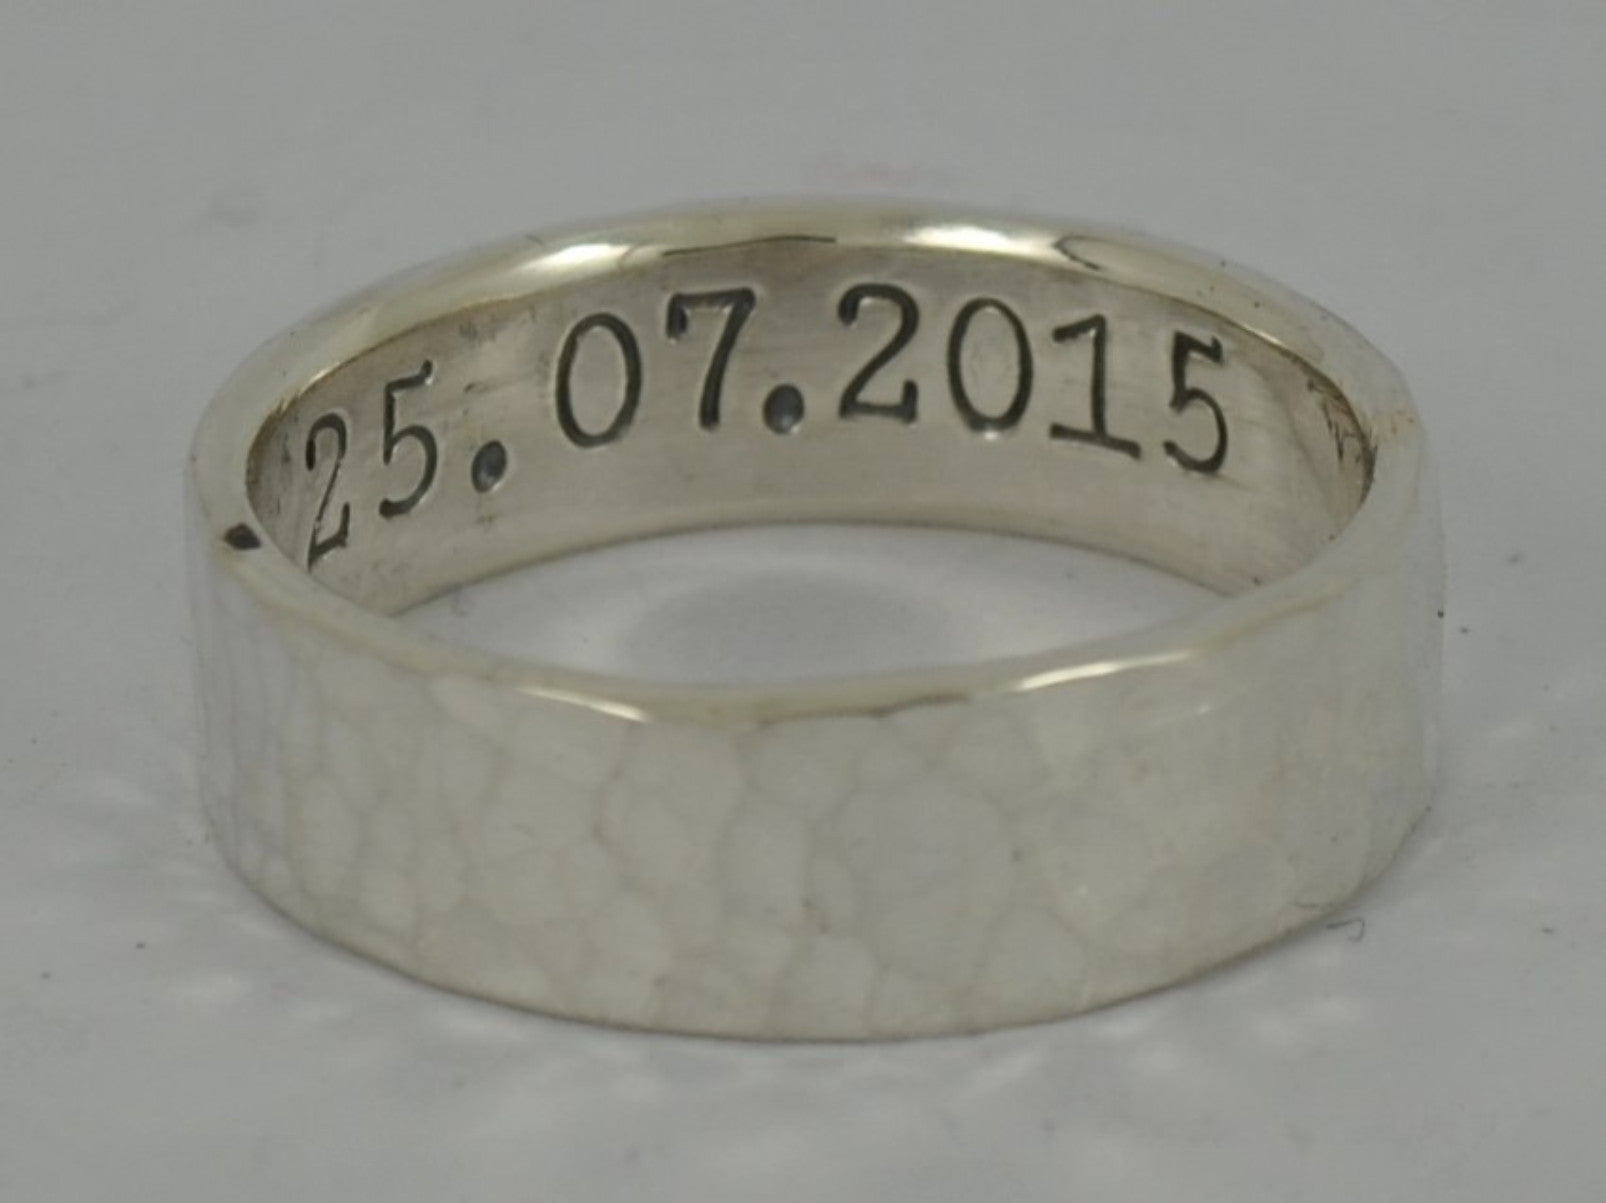 wedding personalised berkshire engraving bracknell ring in experts goldsmiths sets rings